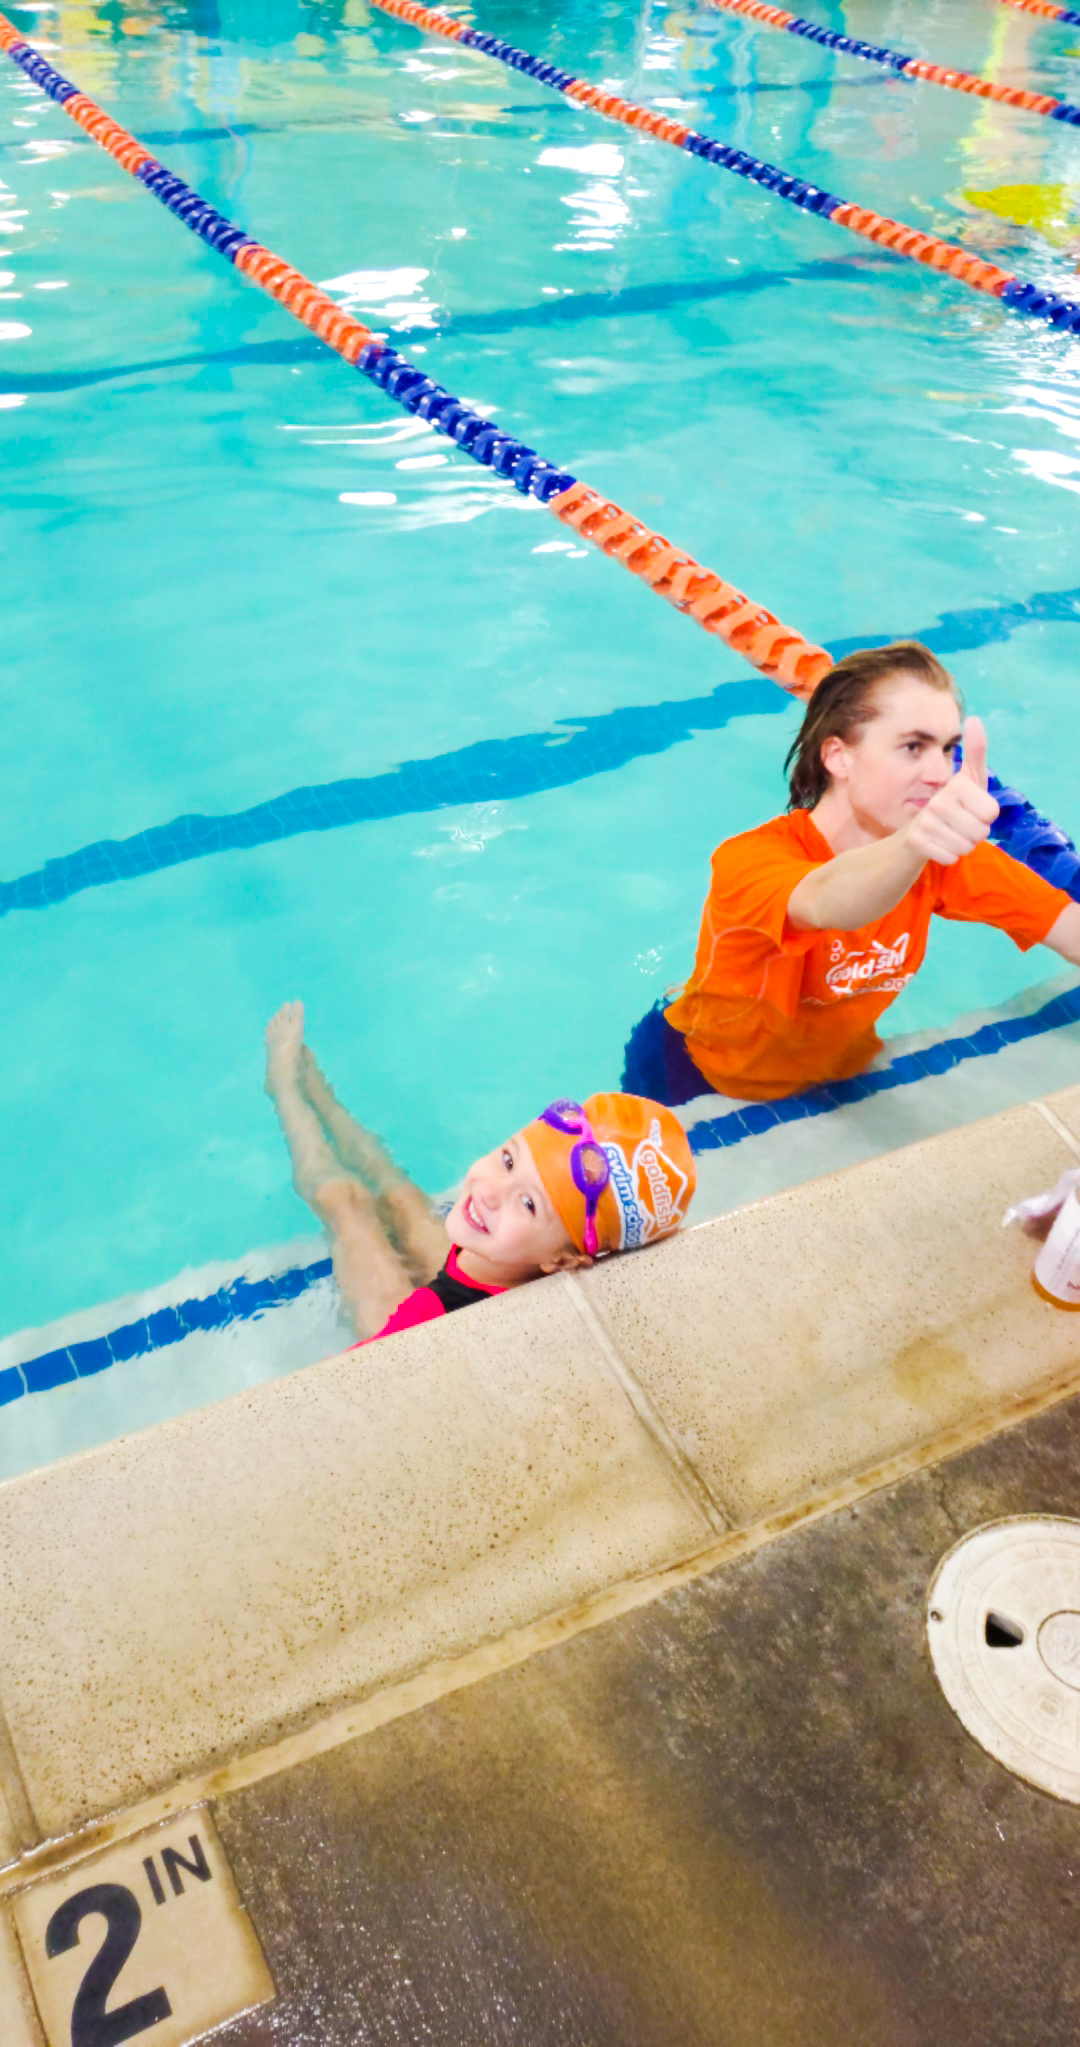 We do swimming lessons at Goldfish Swim School to have a fun and safe Summer in the pool or ocean on vacation! Sign your kids up for swimming lessons today!